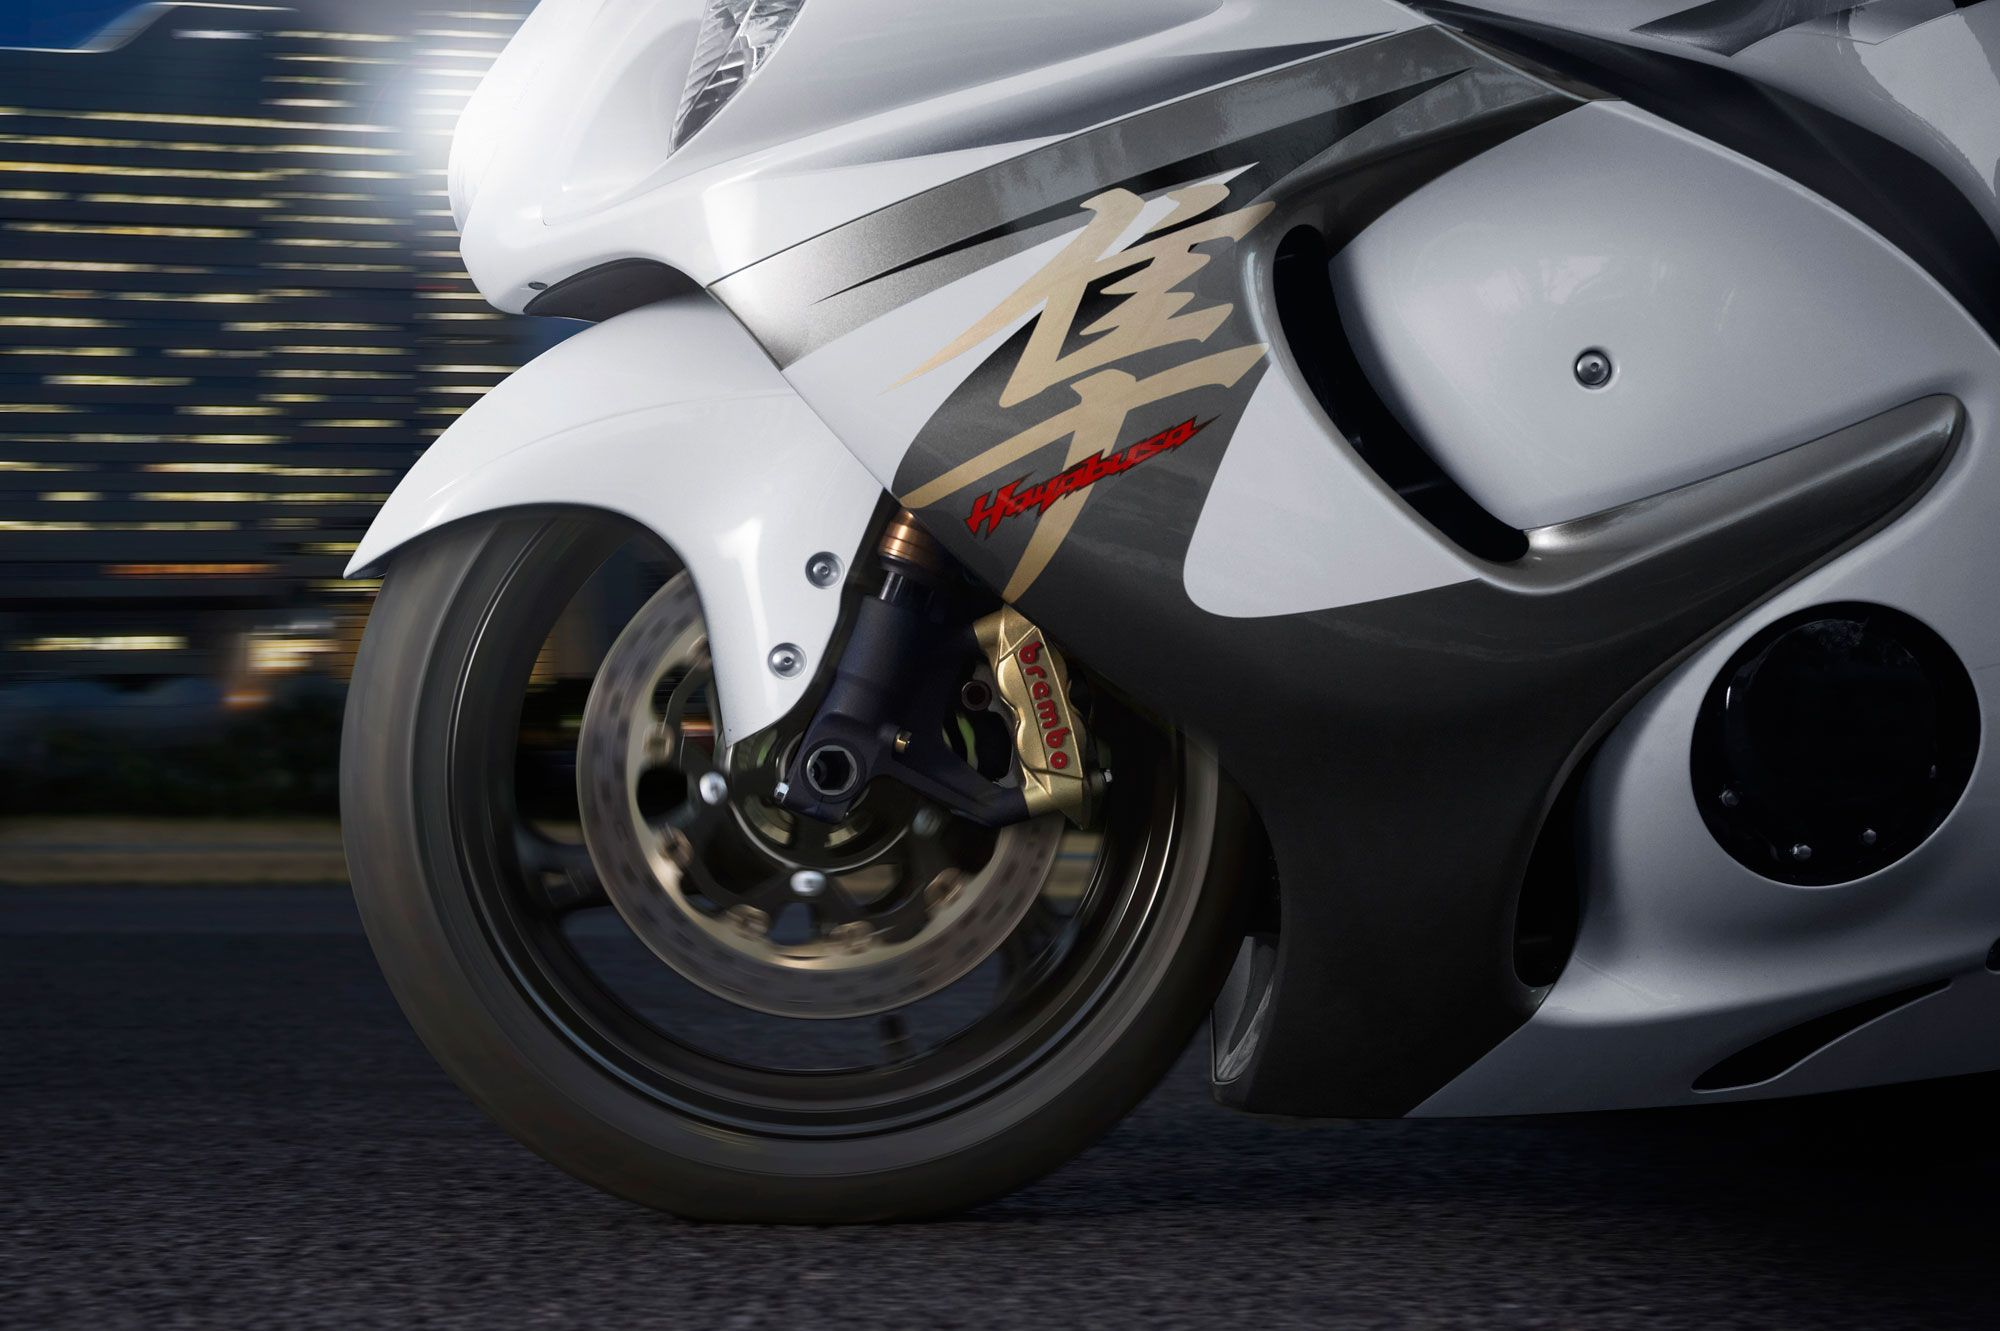 Suzuki hayabusa hd wallpaper download wallpaper pinterest wallpaper